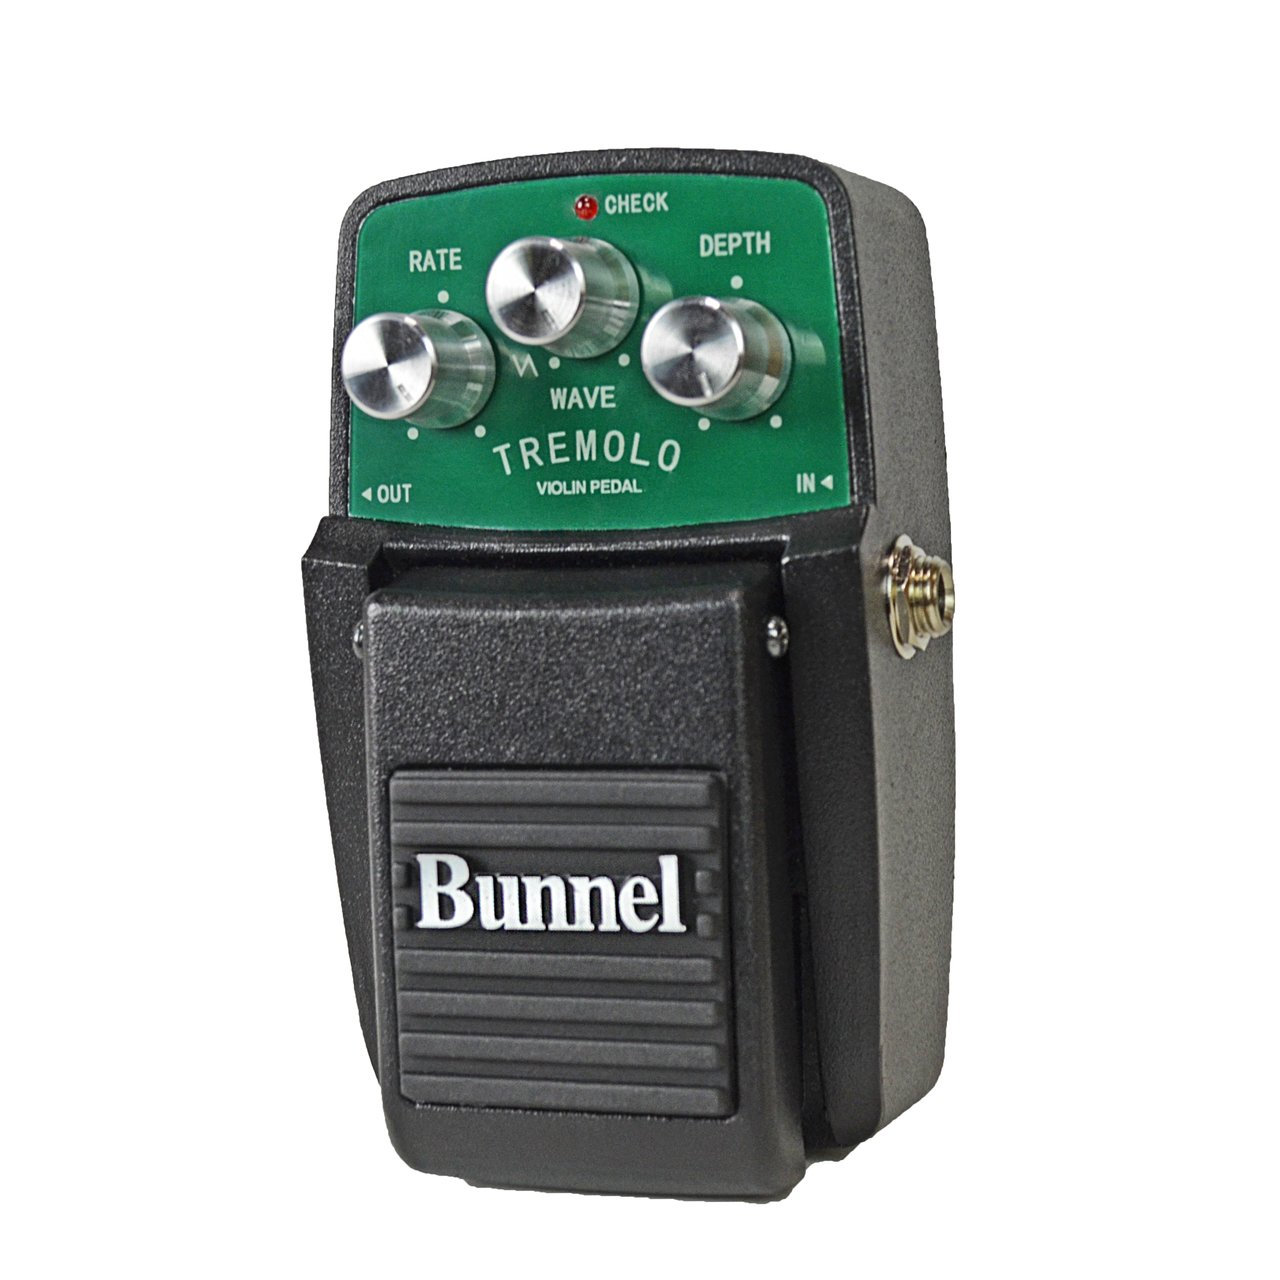 Bunnel Tremolo Effects Pedal in action